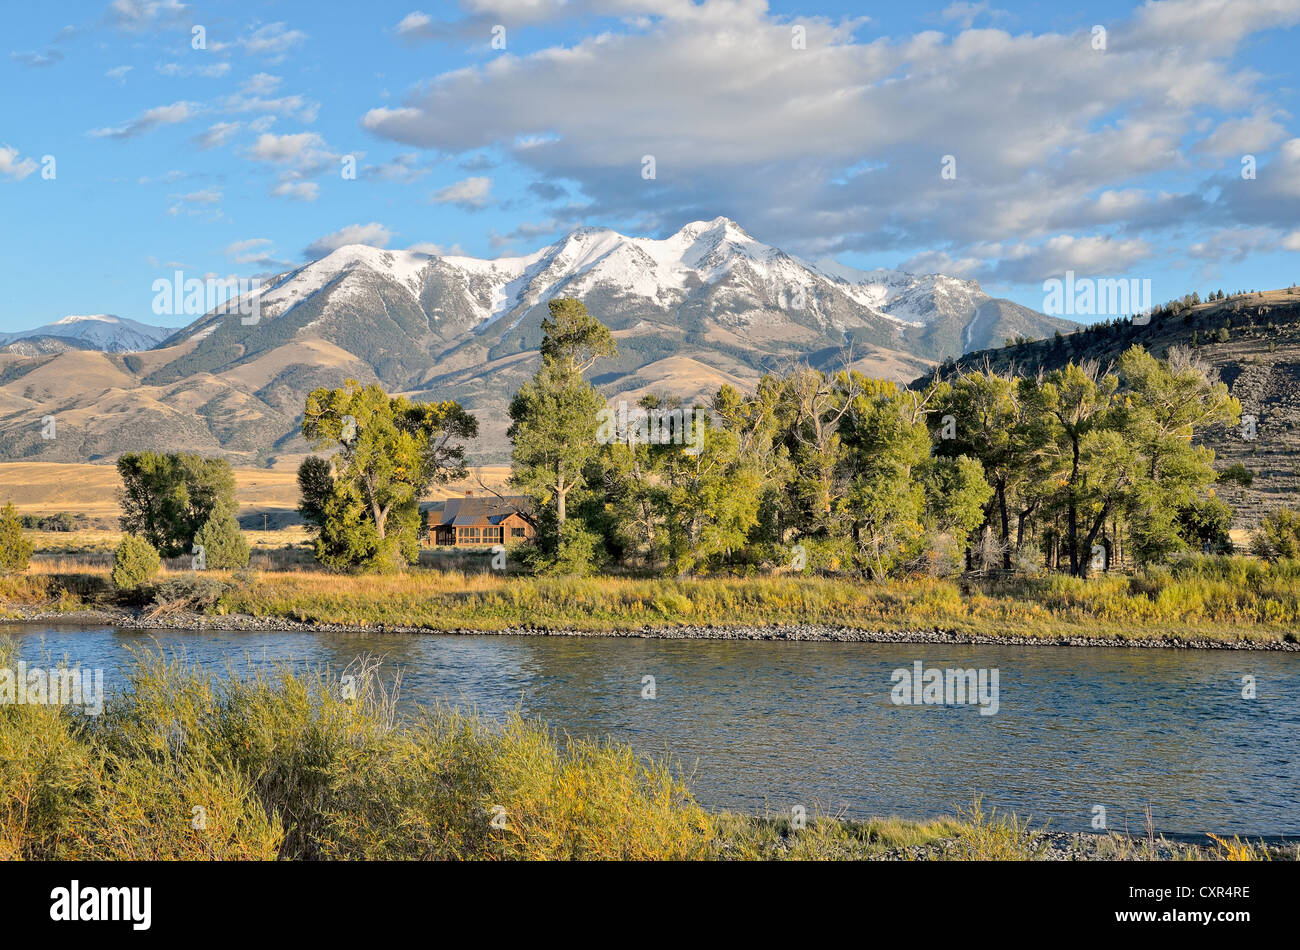 Emigrant Peak, 3327m, Yellowstone River, Absaroka Range, Paradise Valley, Livingston, Montana, USA - Stock Image